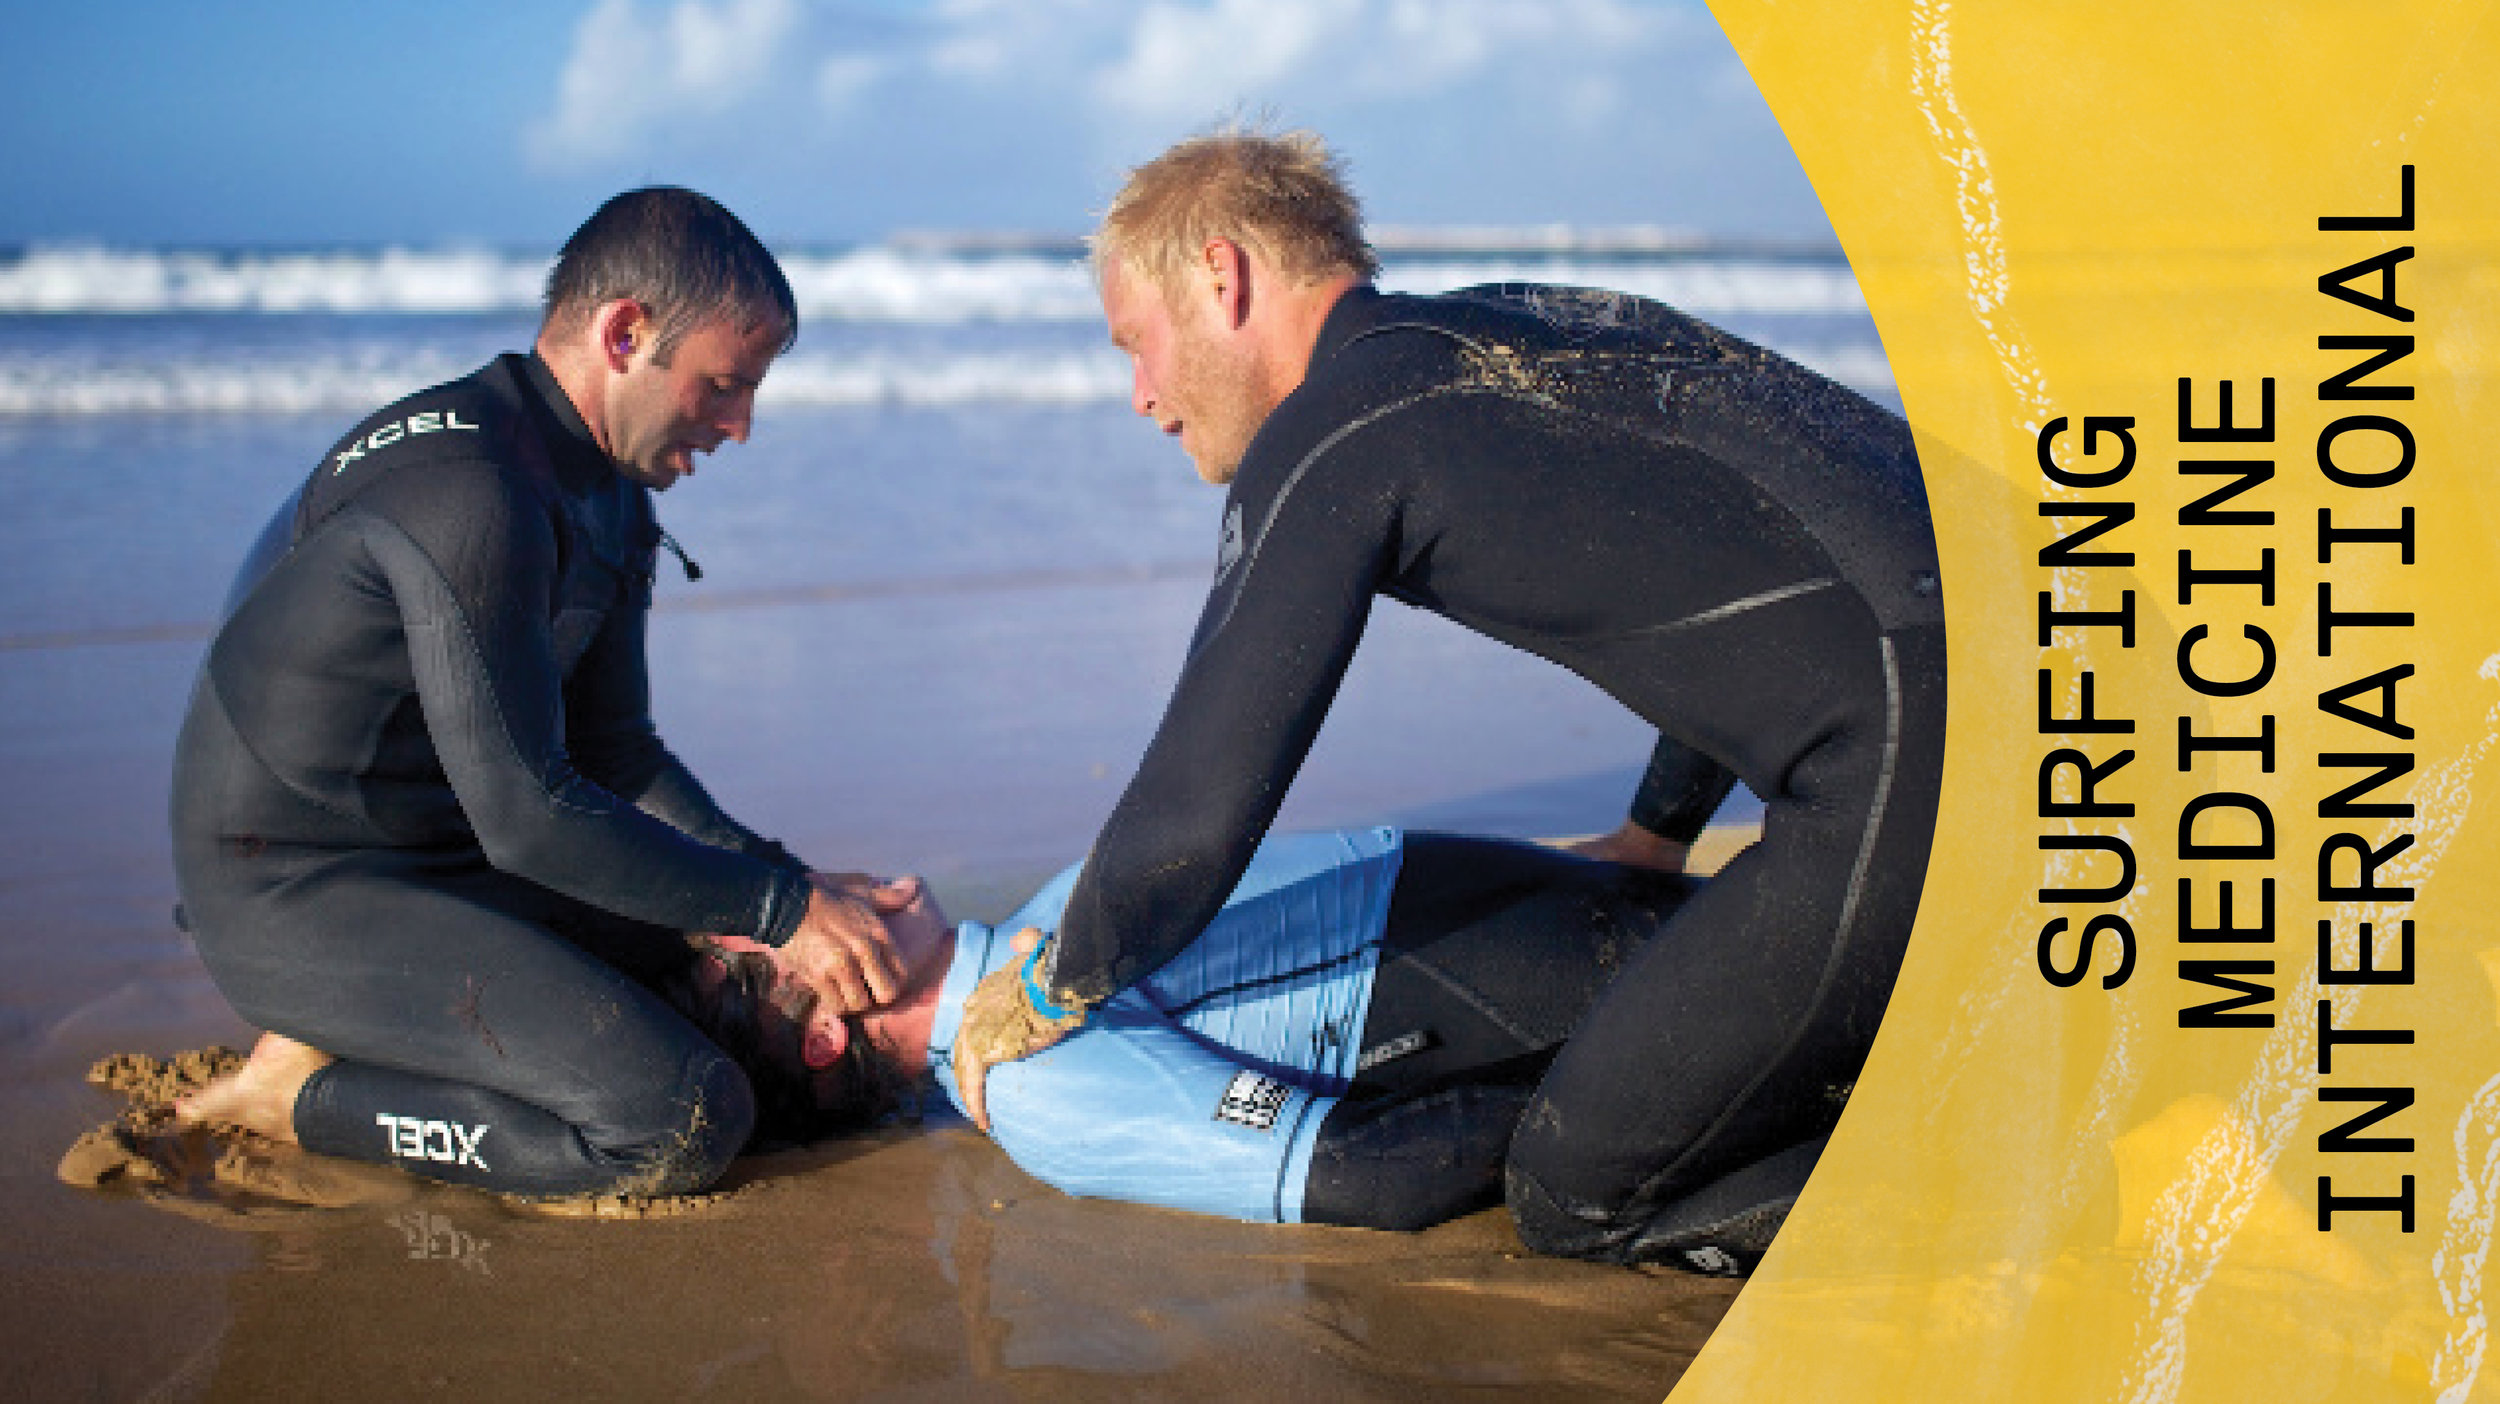 SURFING MEDICINE - Essential know-how on water safety, surfing medicine and surf travel